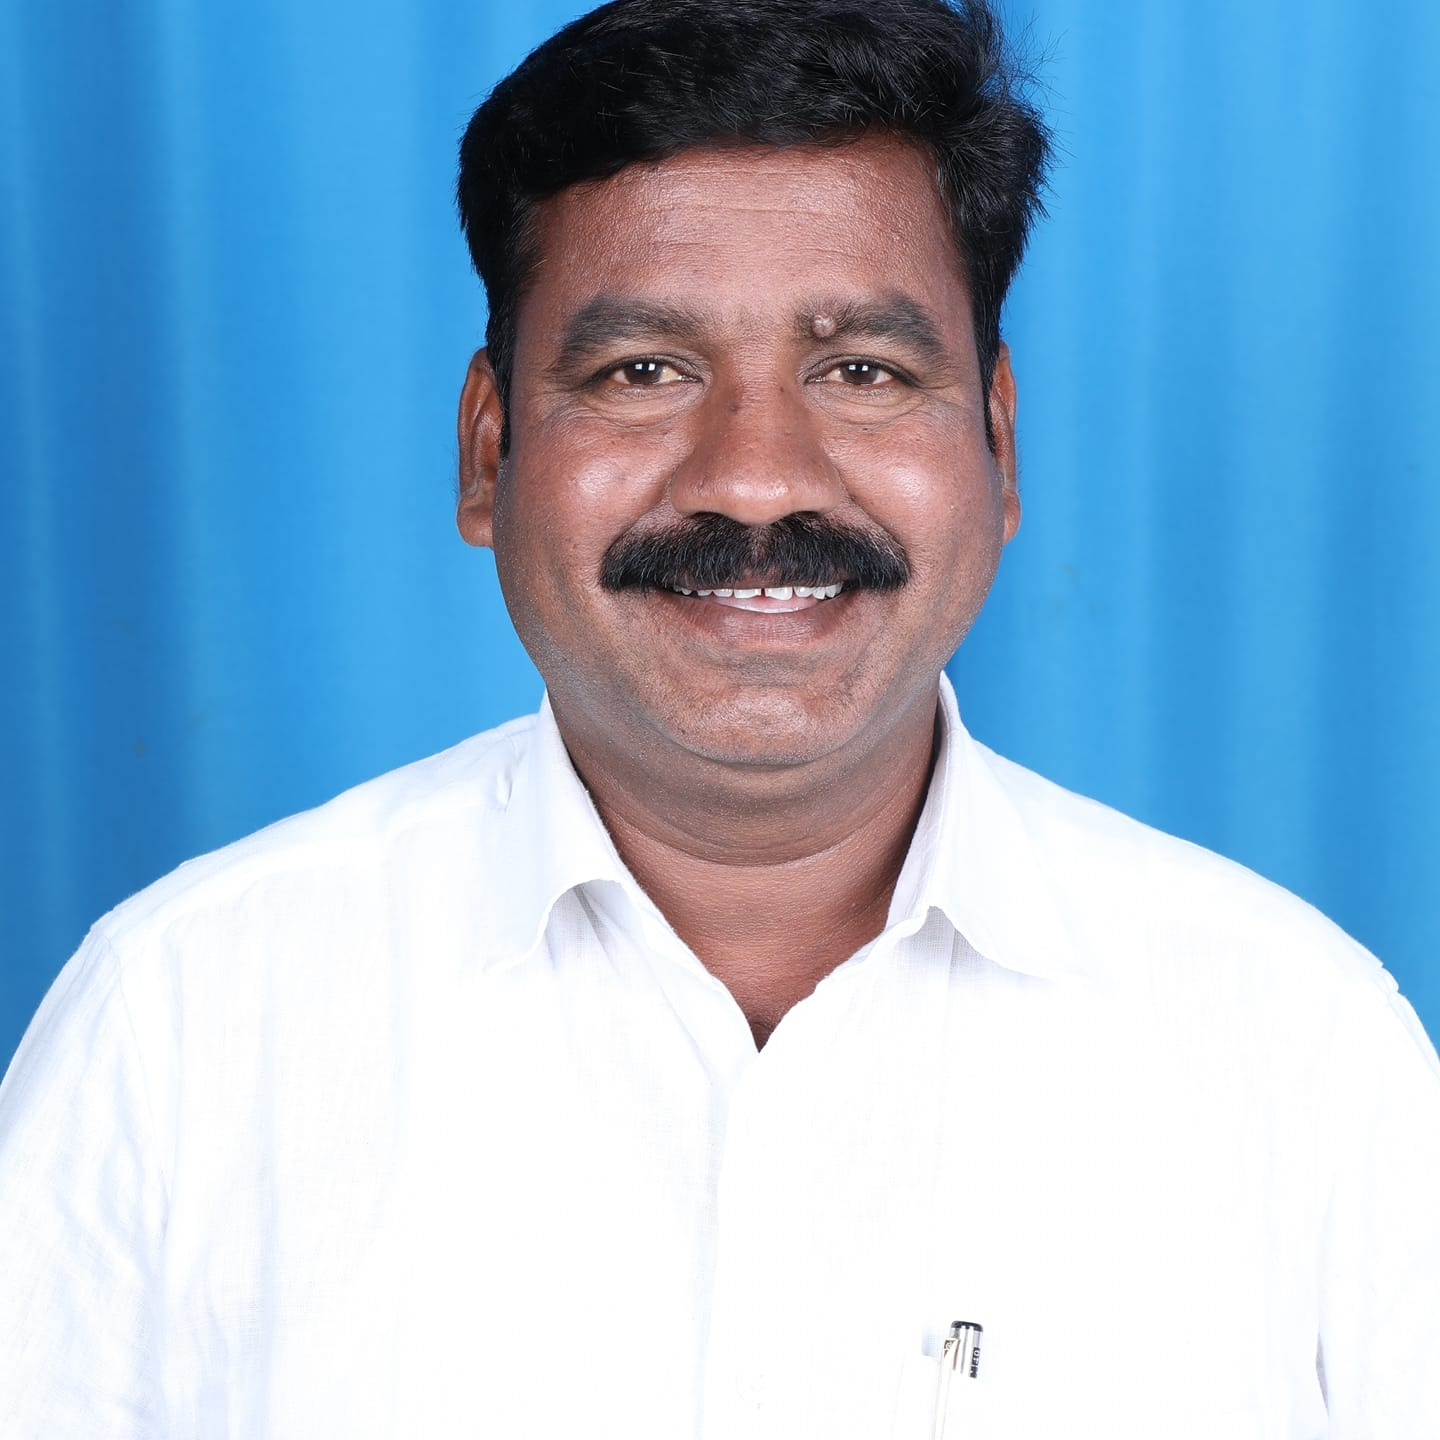 Enugala Sunil   Three Divisions Incharge   Village President   Party Activist   District Leader   Material Incharge   39th Booth Incharge   Christian Colony   Warangal   Warangal Urban   Warangal East   Telangana   TRS   theLeadersPage